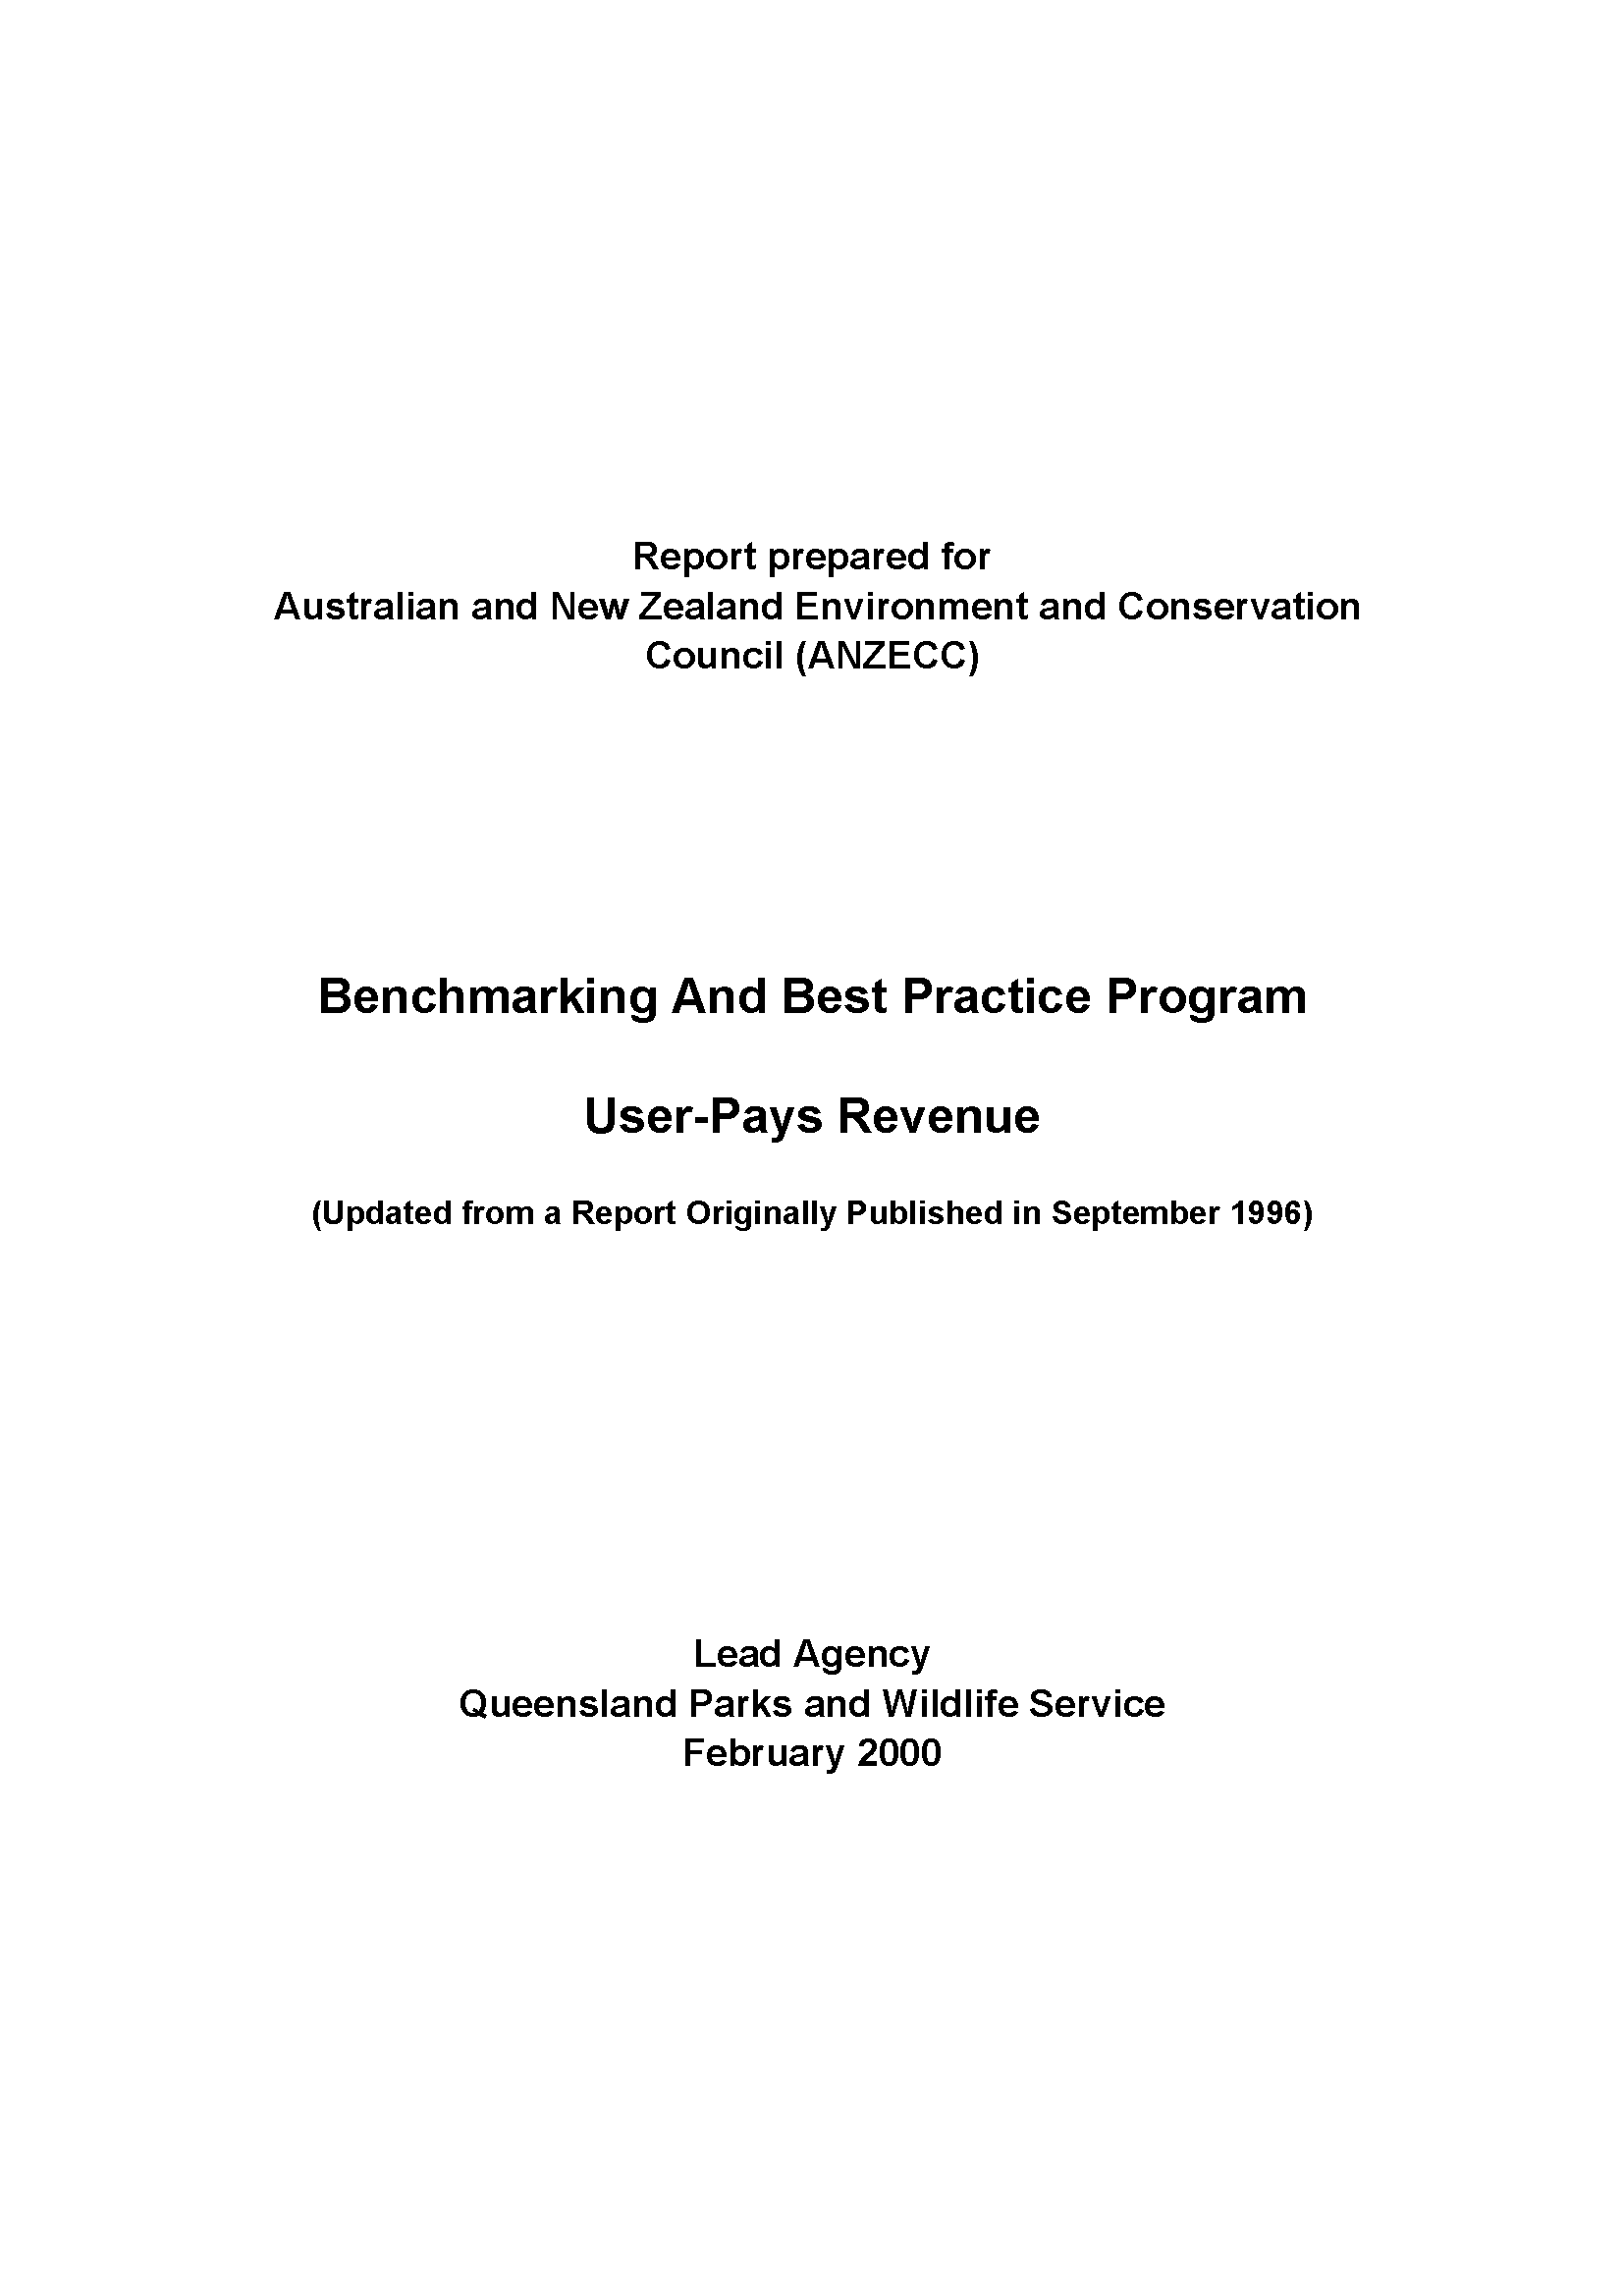 Capa da Benchmarking and Best Practice Program